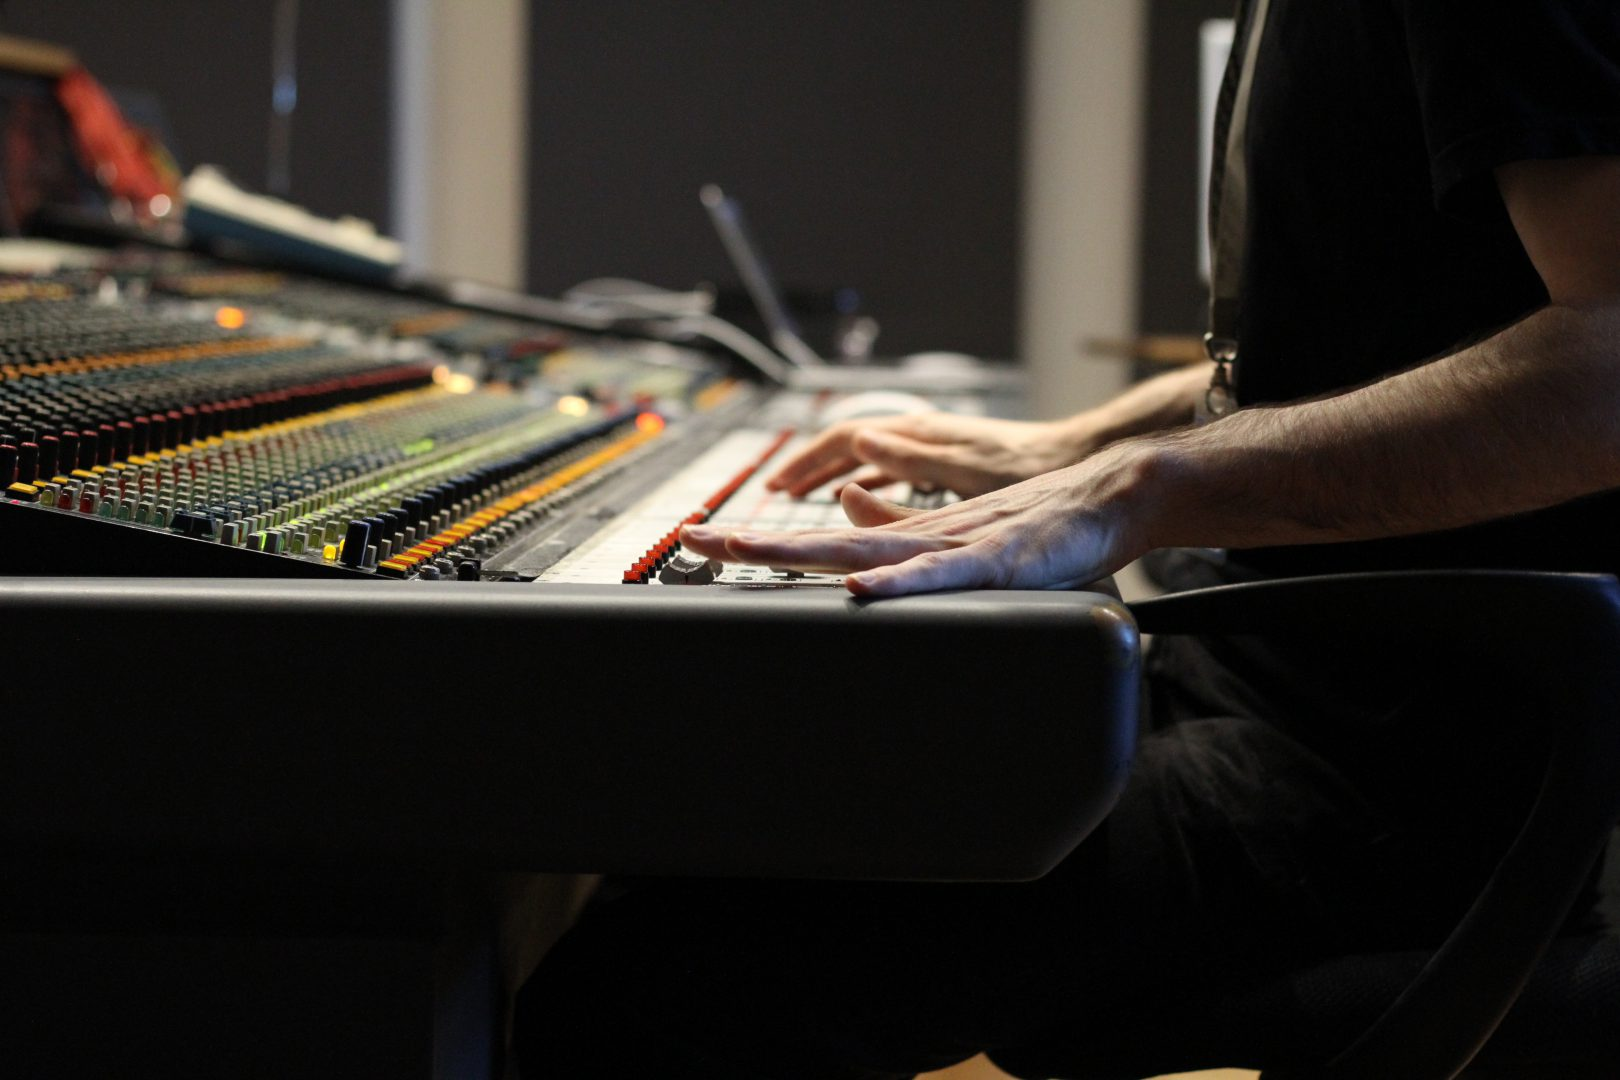 Getting hands on with the Neve desk in our Spirit Studio